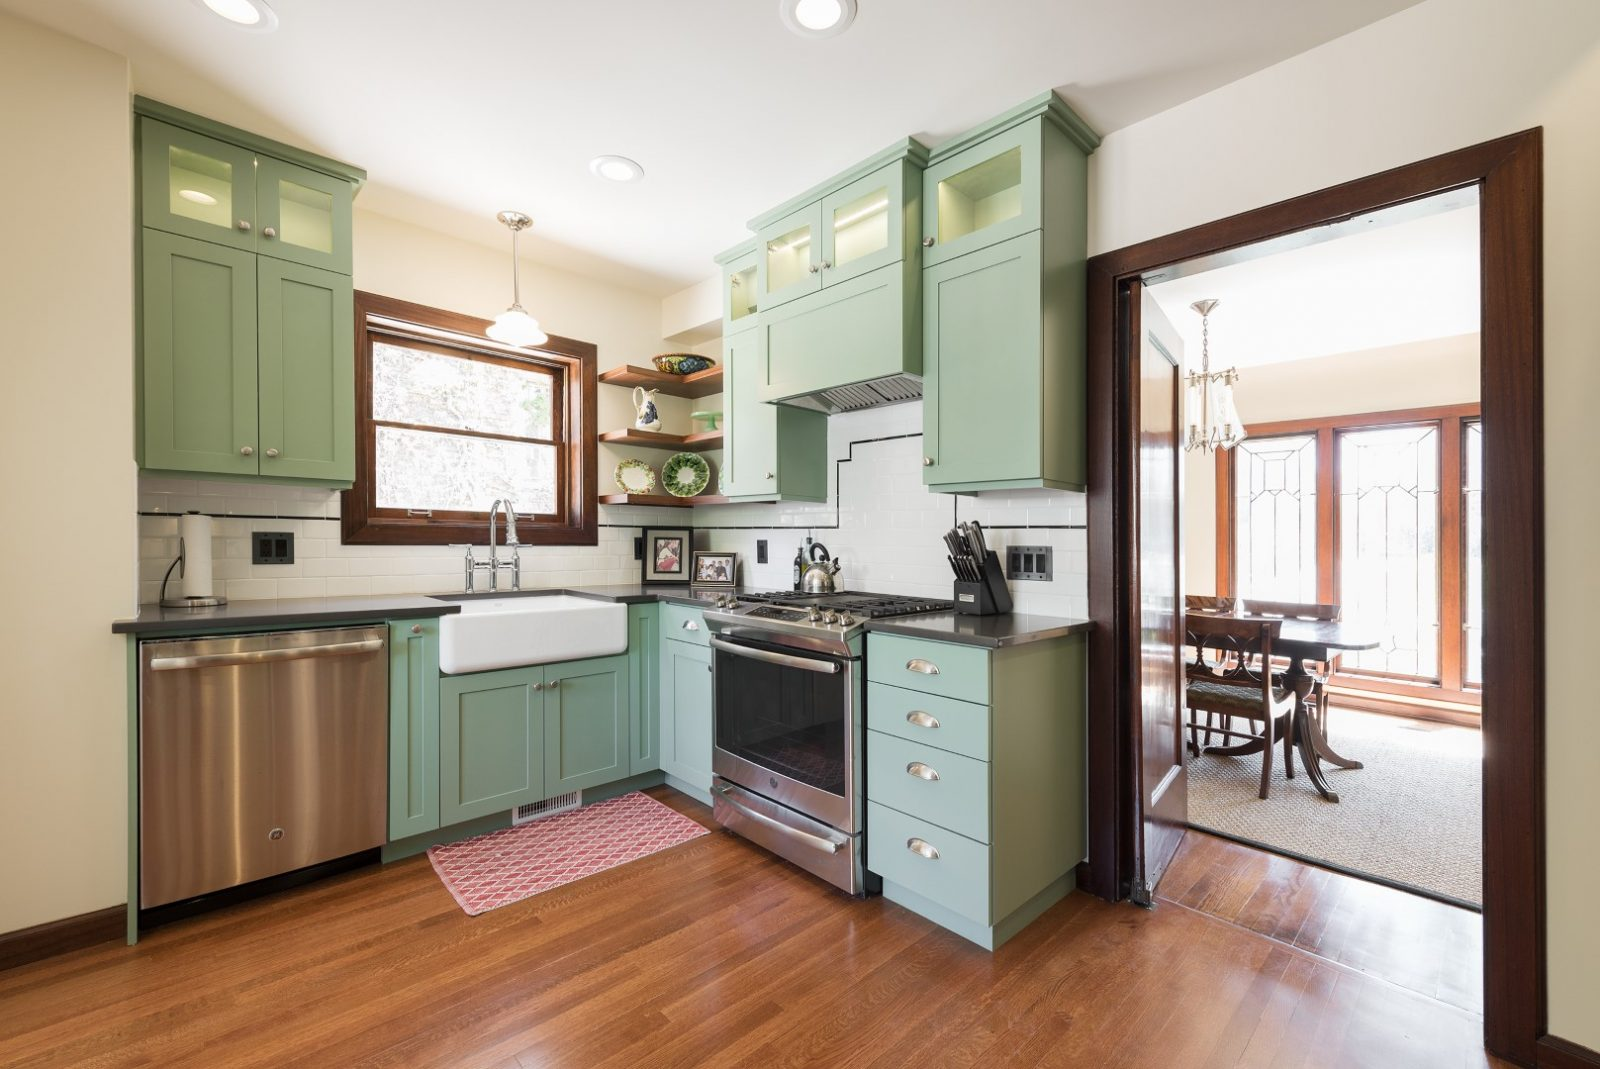 Kitchen, Colorful Cabinets, Updated, Stainless, Tudor | Renovation Design Group